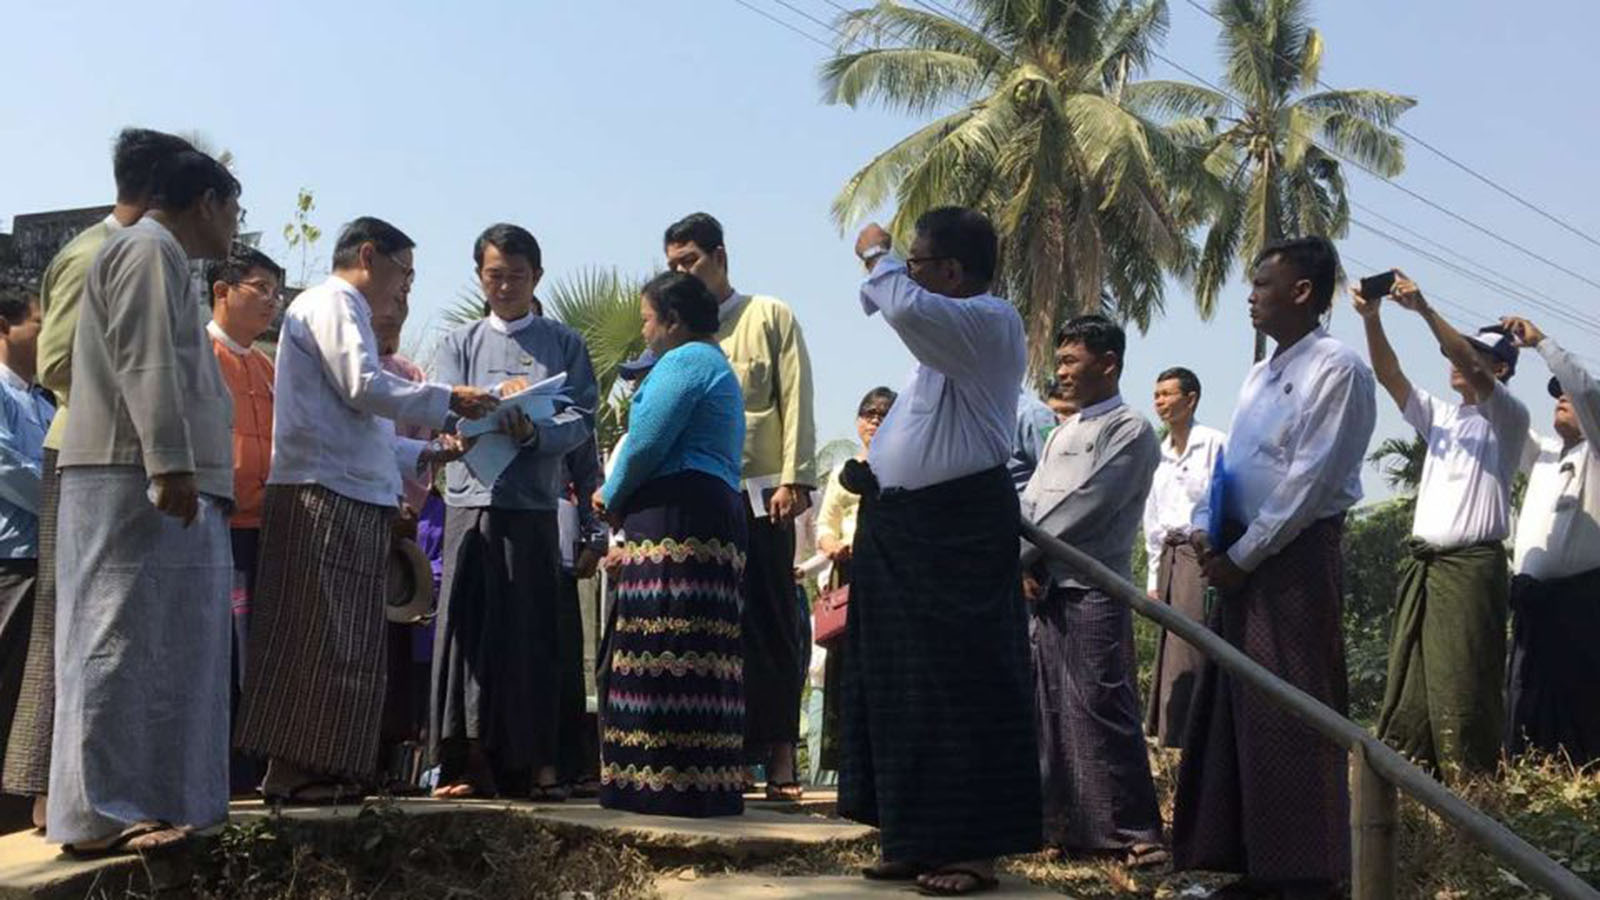 Union Minister Thura U Aung Ko inspects the maintenance work of ancient Fort Danubyu where General Maha Bandoola resisted the British during the First Anglo-Burmese War. Photo: MNA